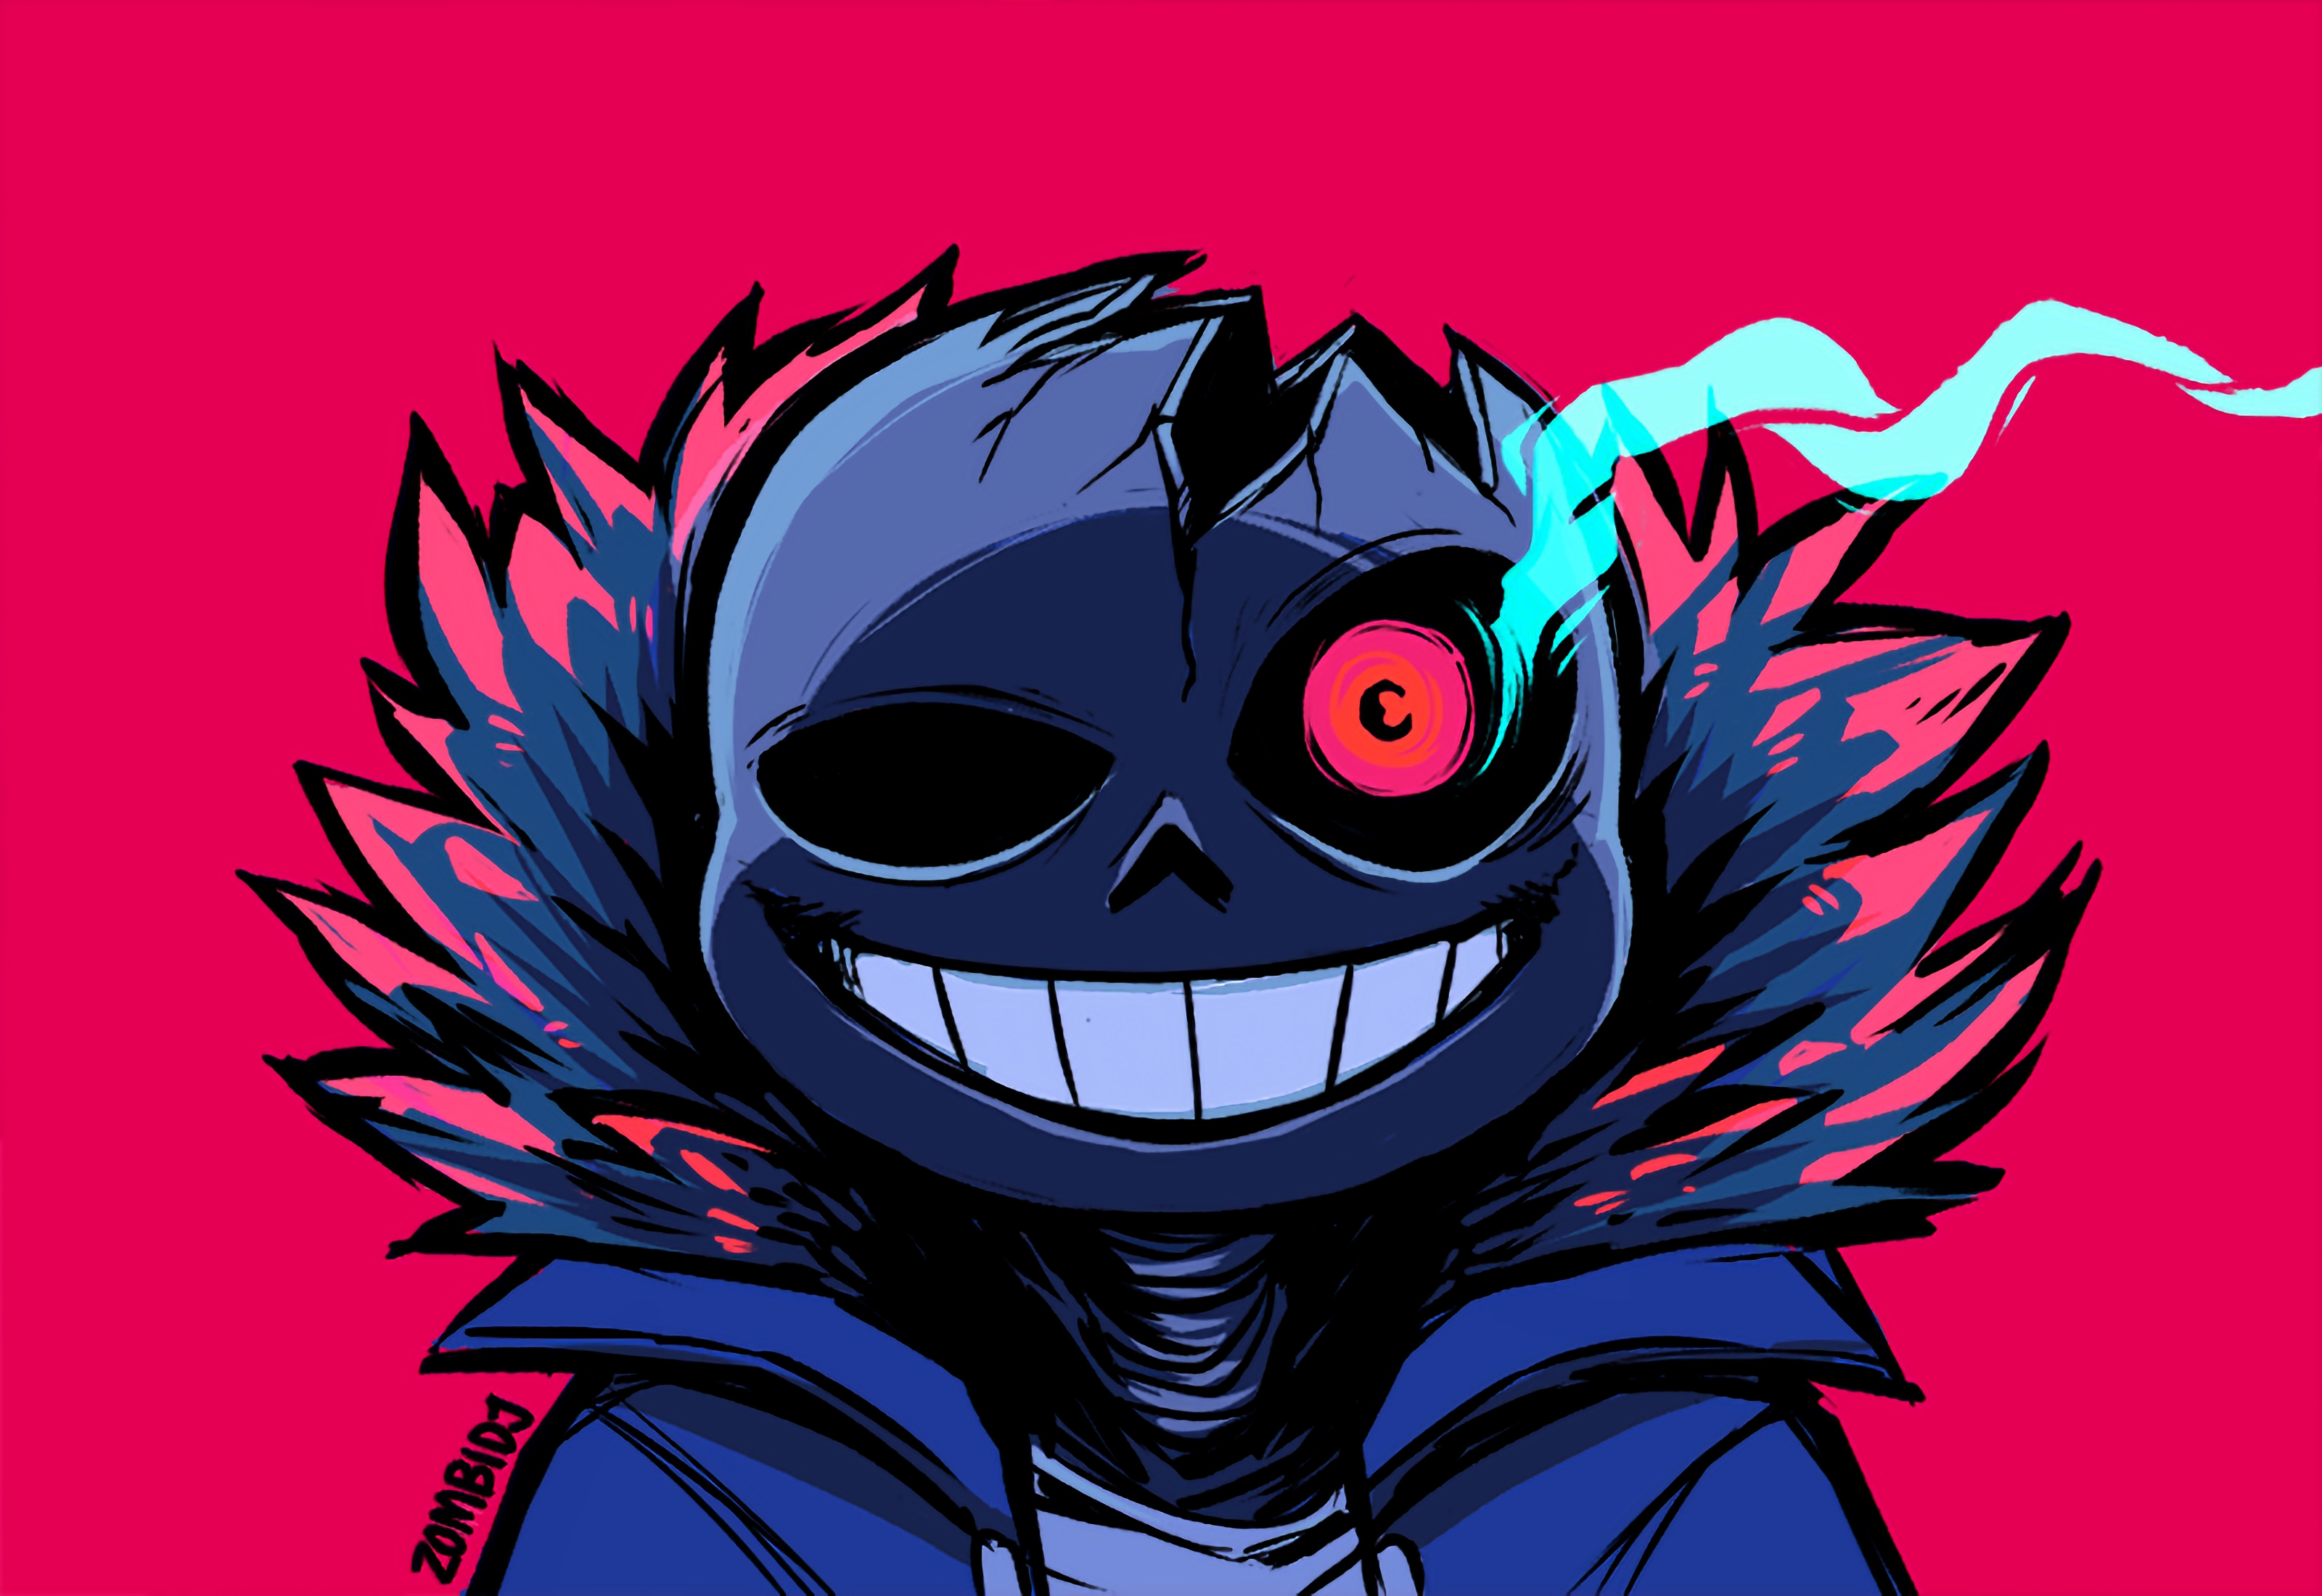 1920x1080 Horrortale Undertale 4k Laptop Full Hd 1080p Hd 4k Wallpapers Images Backgrounds Photos And Pictures